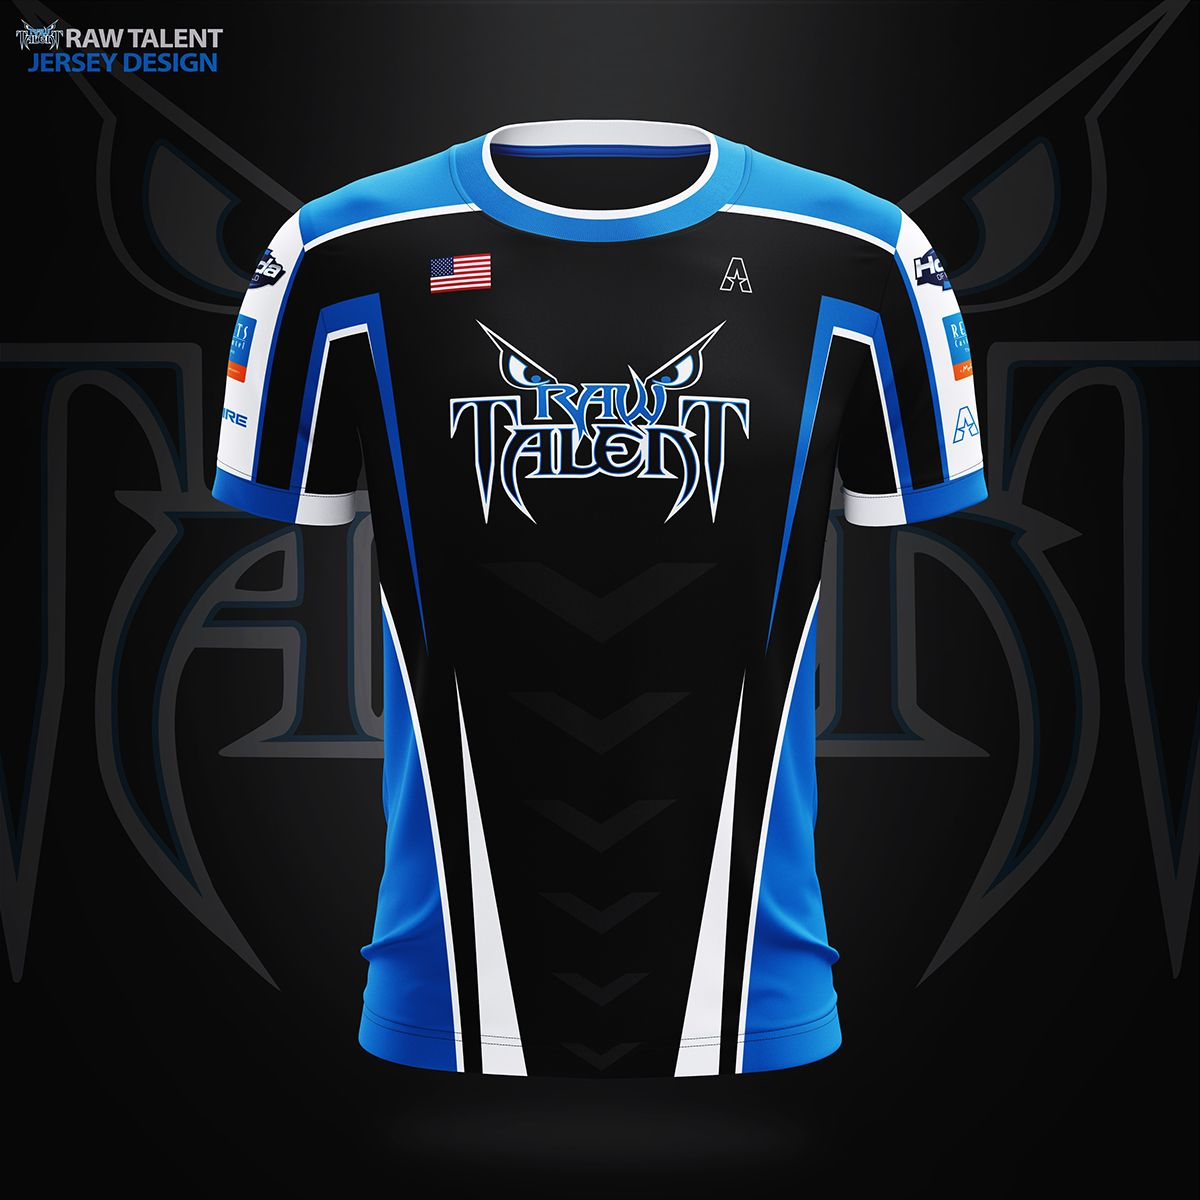 Akquire Clothing Co Esports Team Jersey Designs On Behance Jersey Design Sports Jersey Design Rugby Jersey Design